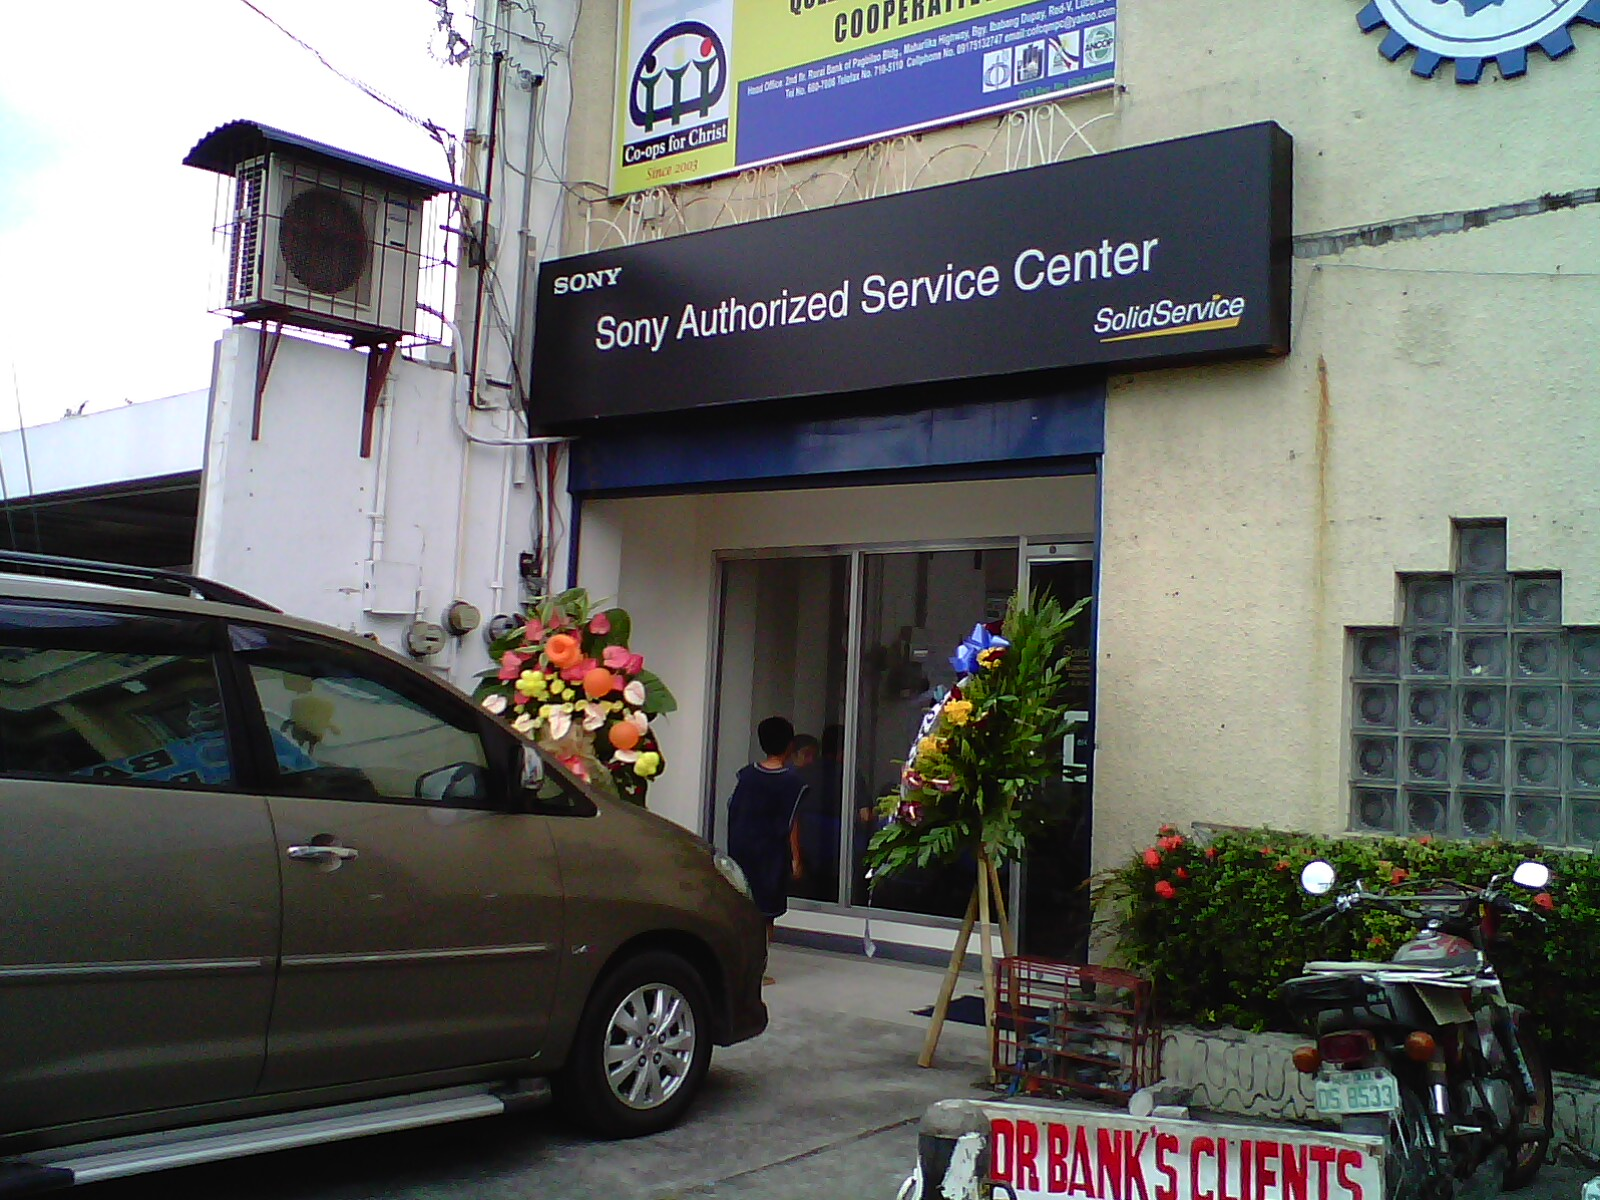 Stunning Sony Authorized Service Center Lucena City Branch Lucena City Sony Family Center Discount Sony Centre Family Fan Day dpreview Sony Family Center